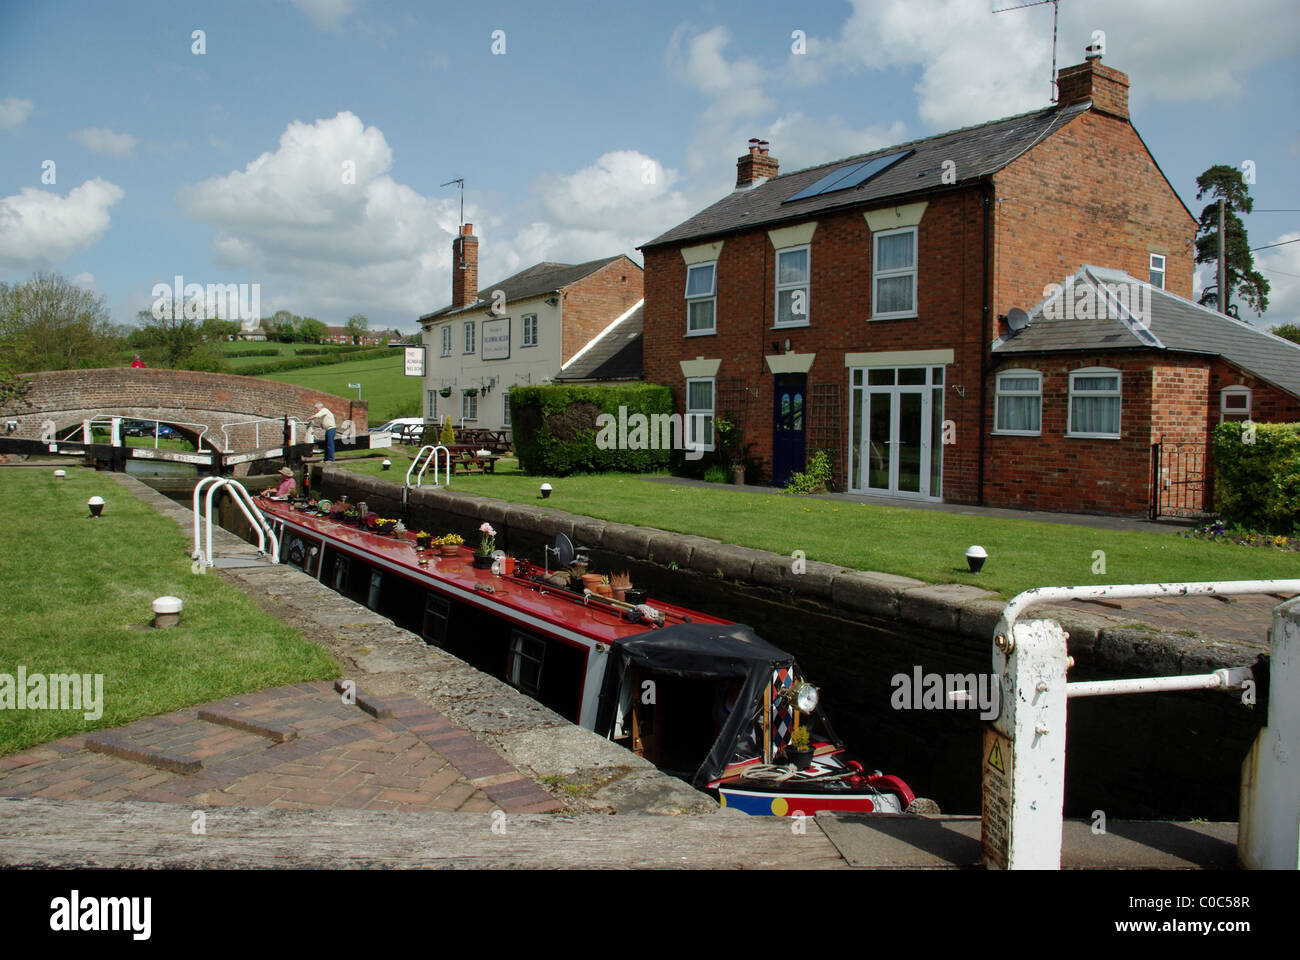 A narrowboat entering a lock on the Grand Union Canal at Braunston, Northamptonshire, England, UK - Stock Image